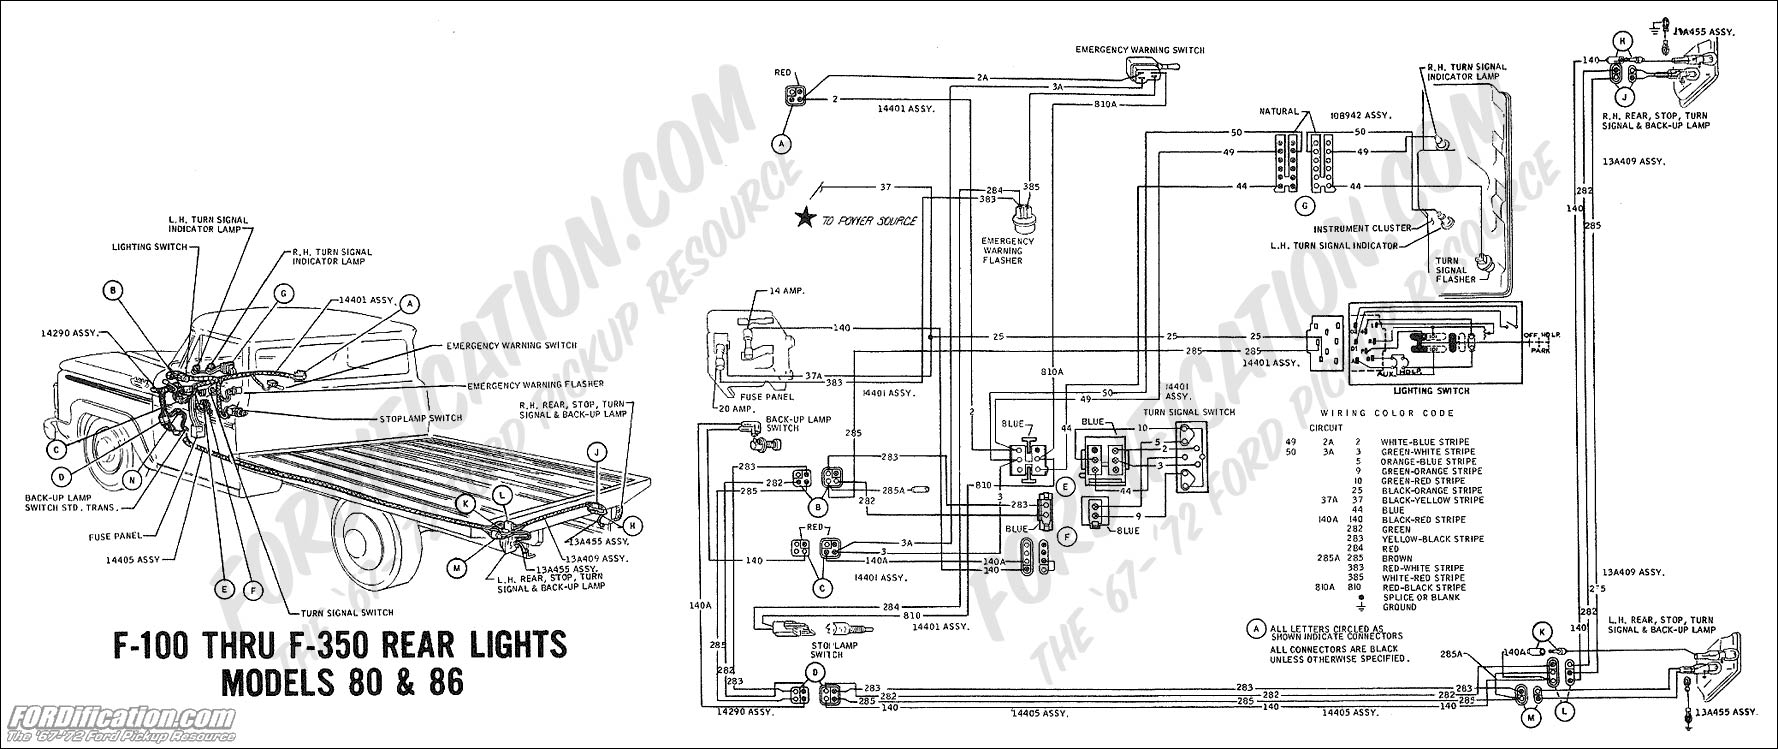 1961 Ford F100 Wiring Diagram Library 1965 Color 1969 F 250 Turn Signal Illustration Of Rh Davisfamilyreunion Us 1966 100 Tail